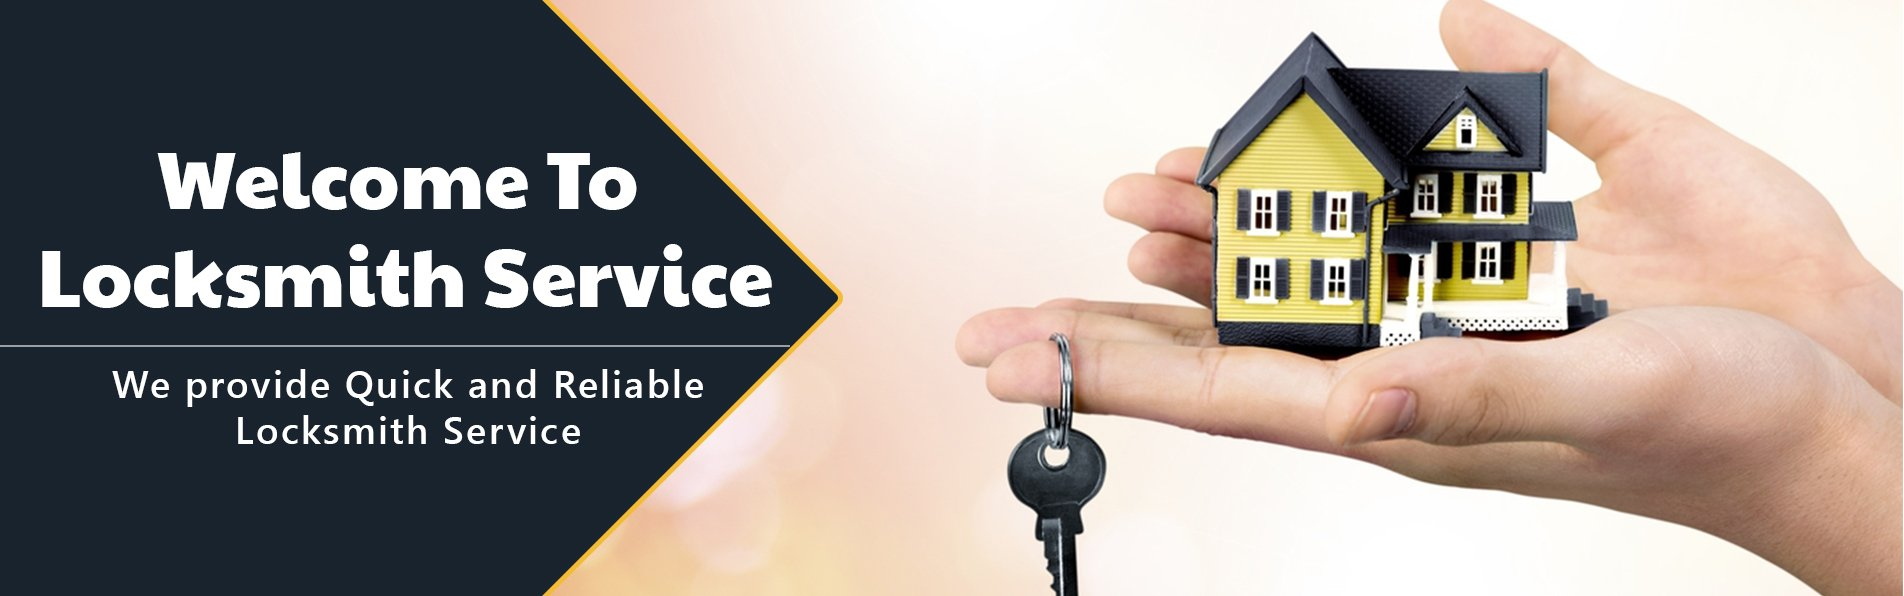 Vcu VA Locksmith Store, Richmond, VA 804-420-9525